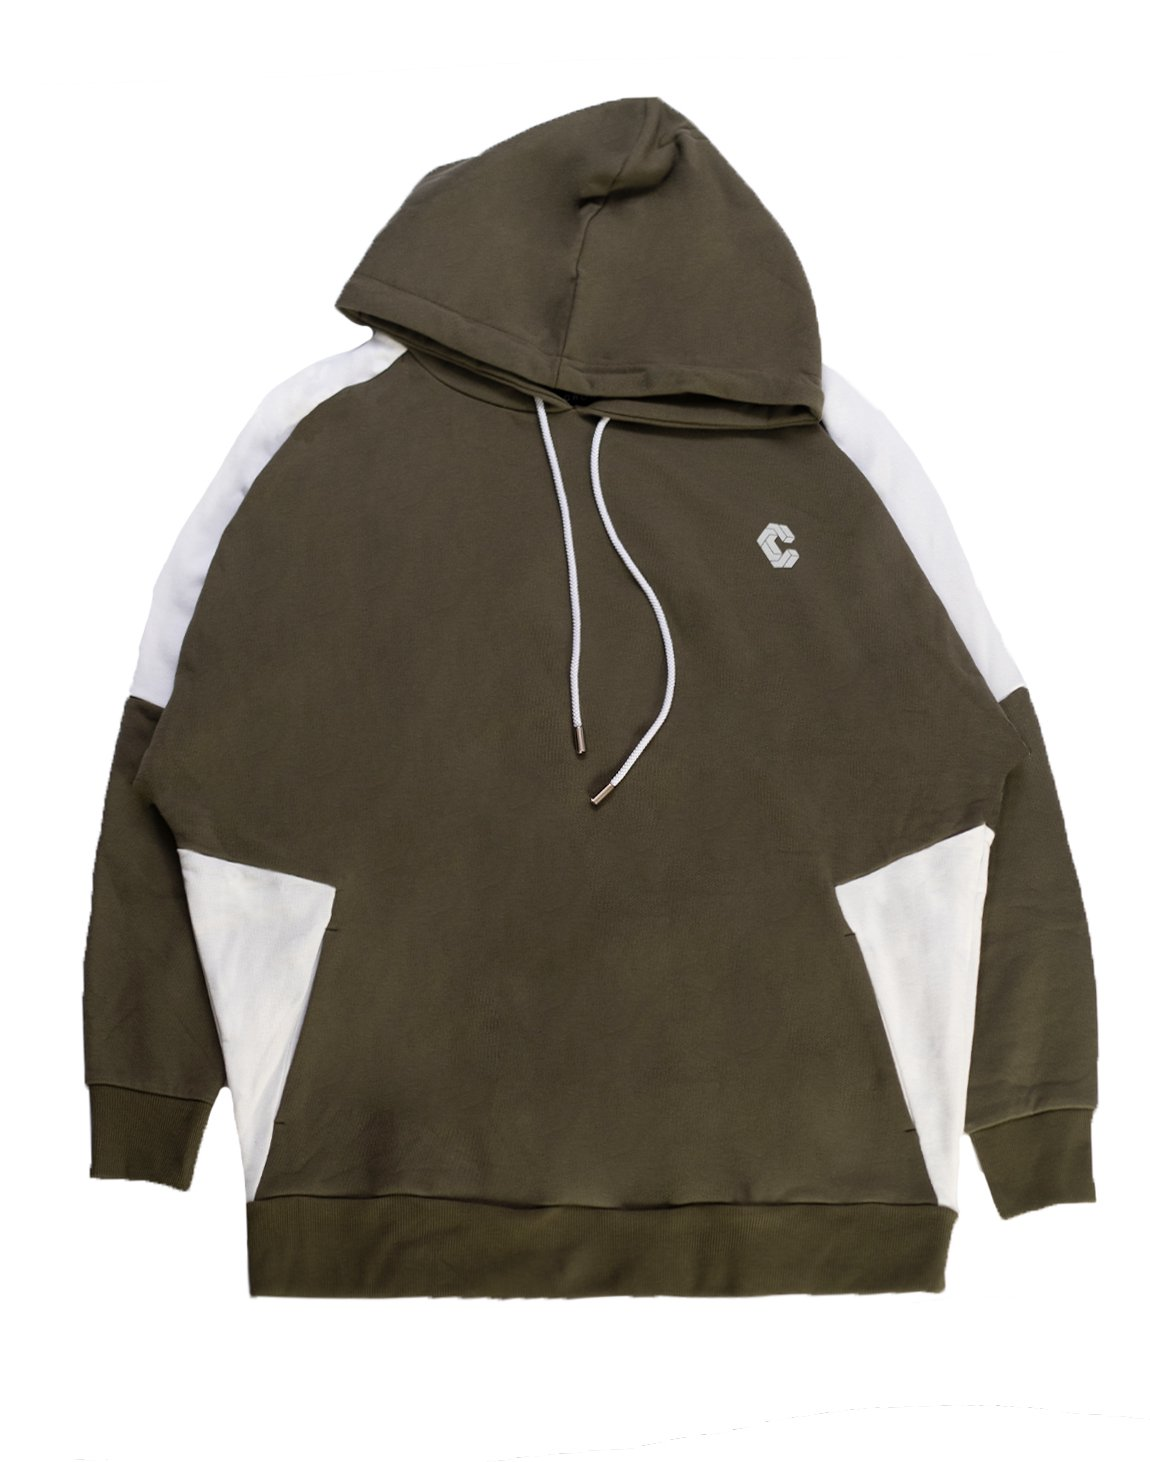 CRONOS NEW SHOULDER COLOR HOODY【KHAKI×WHITE】